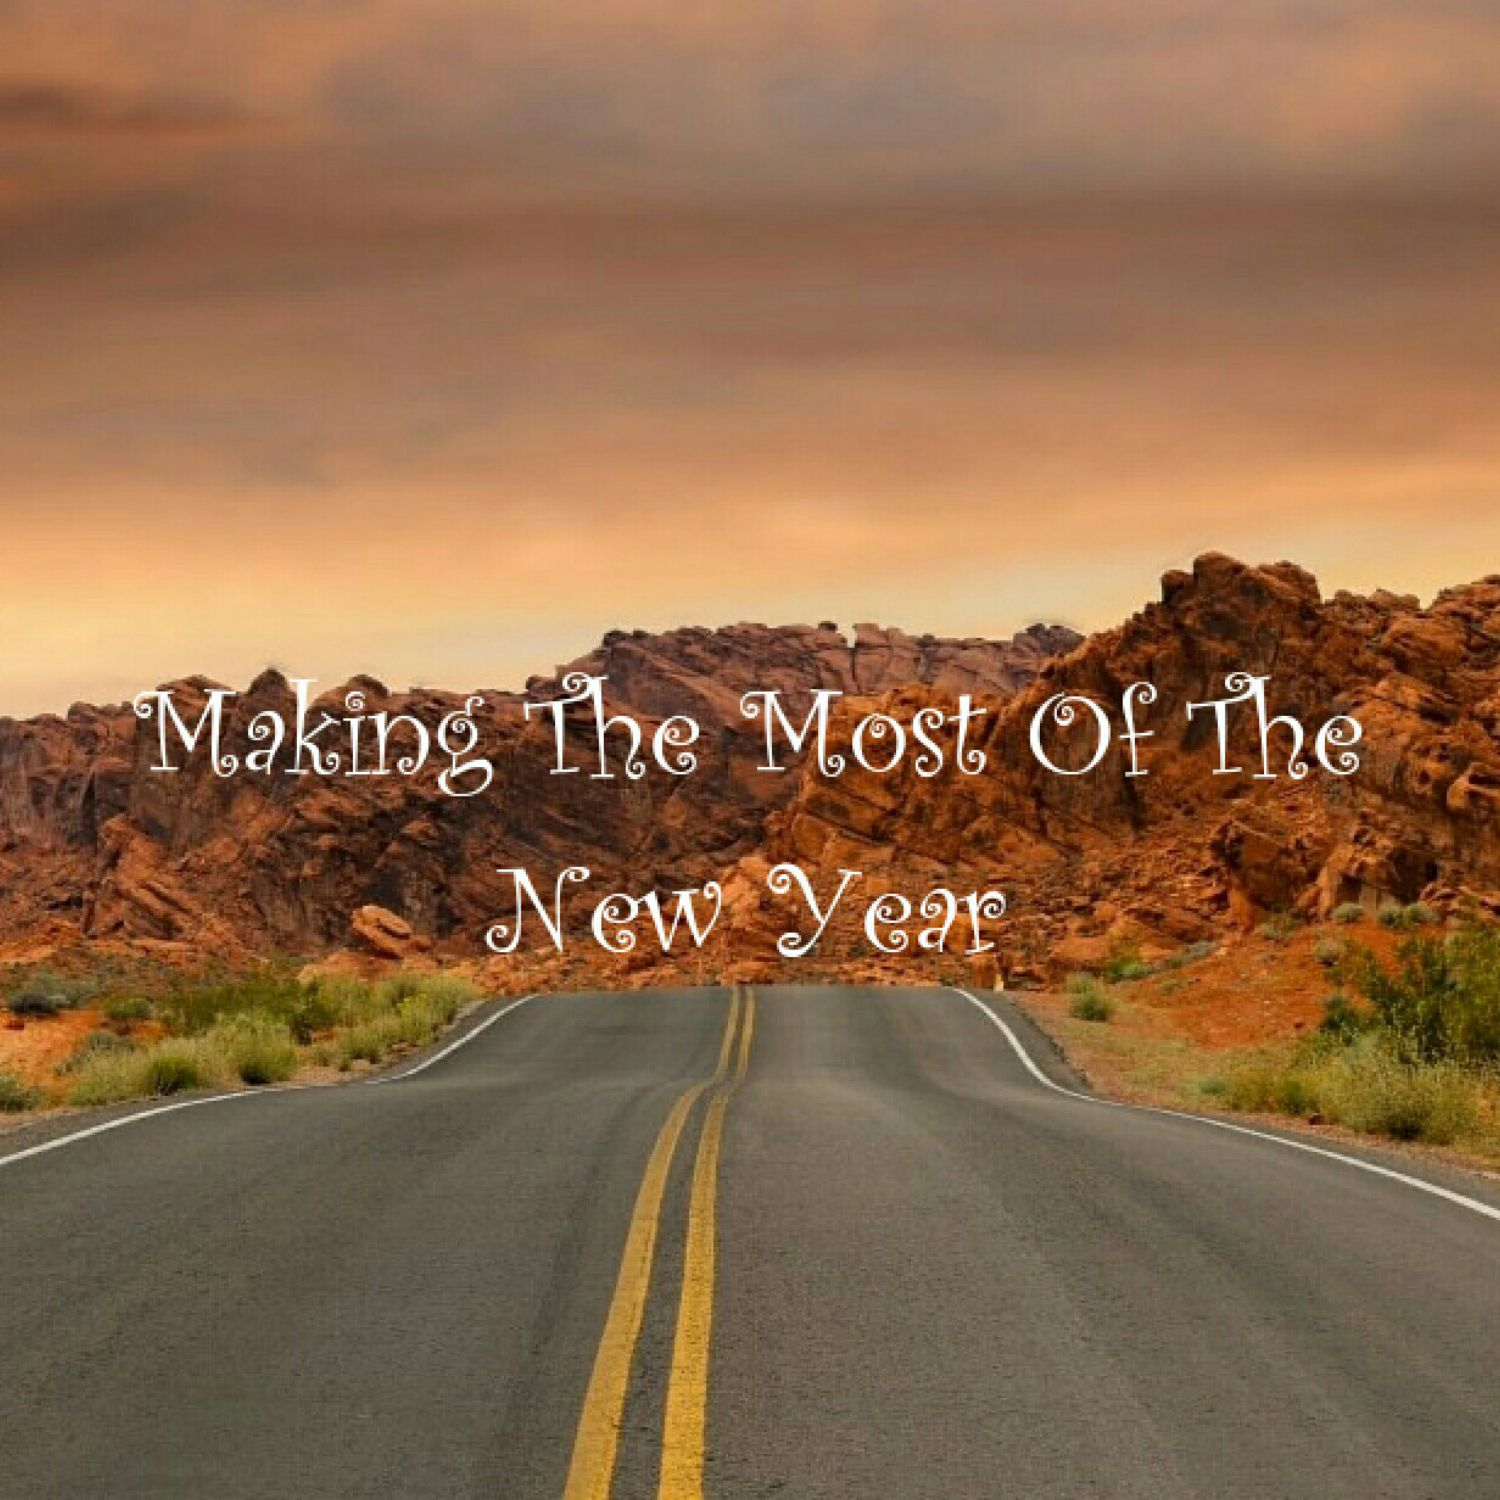 How To Make The Most Of The New Year